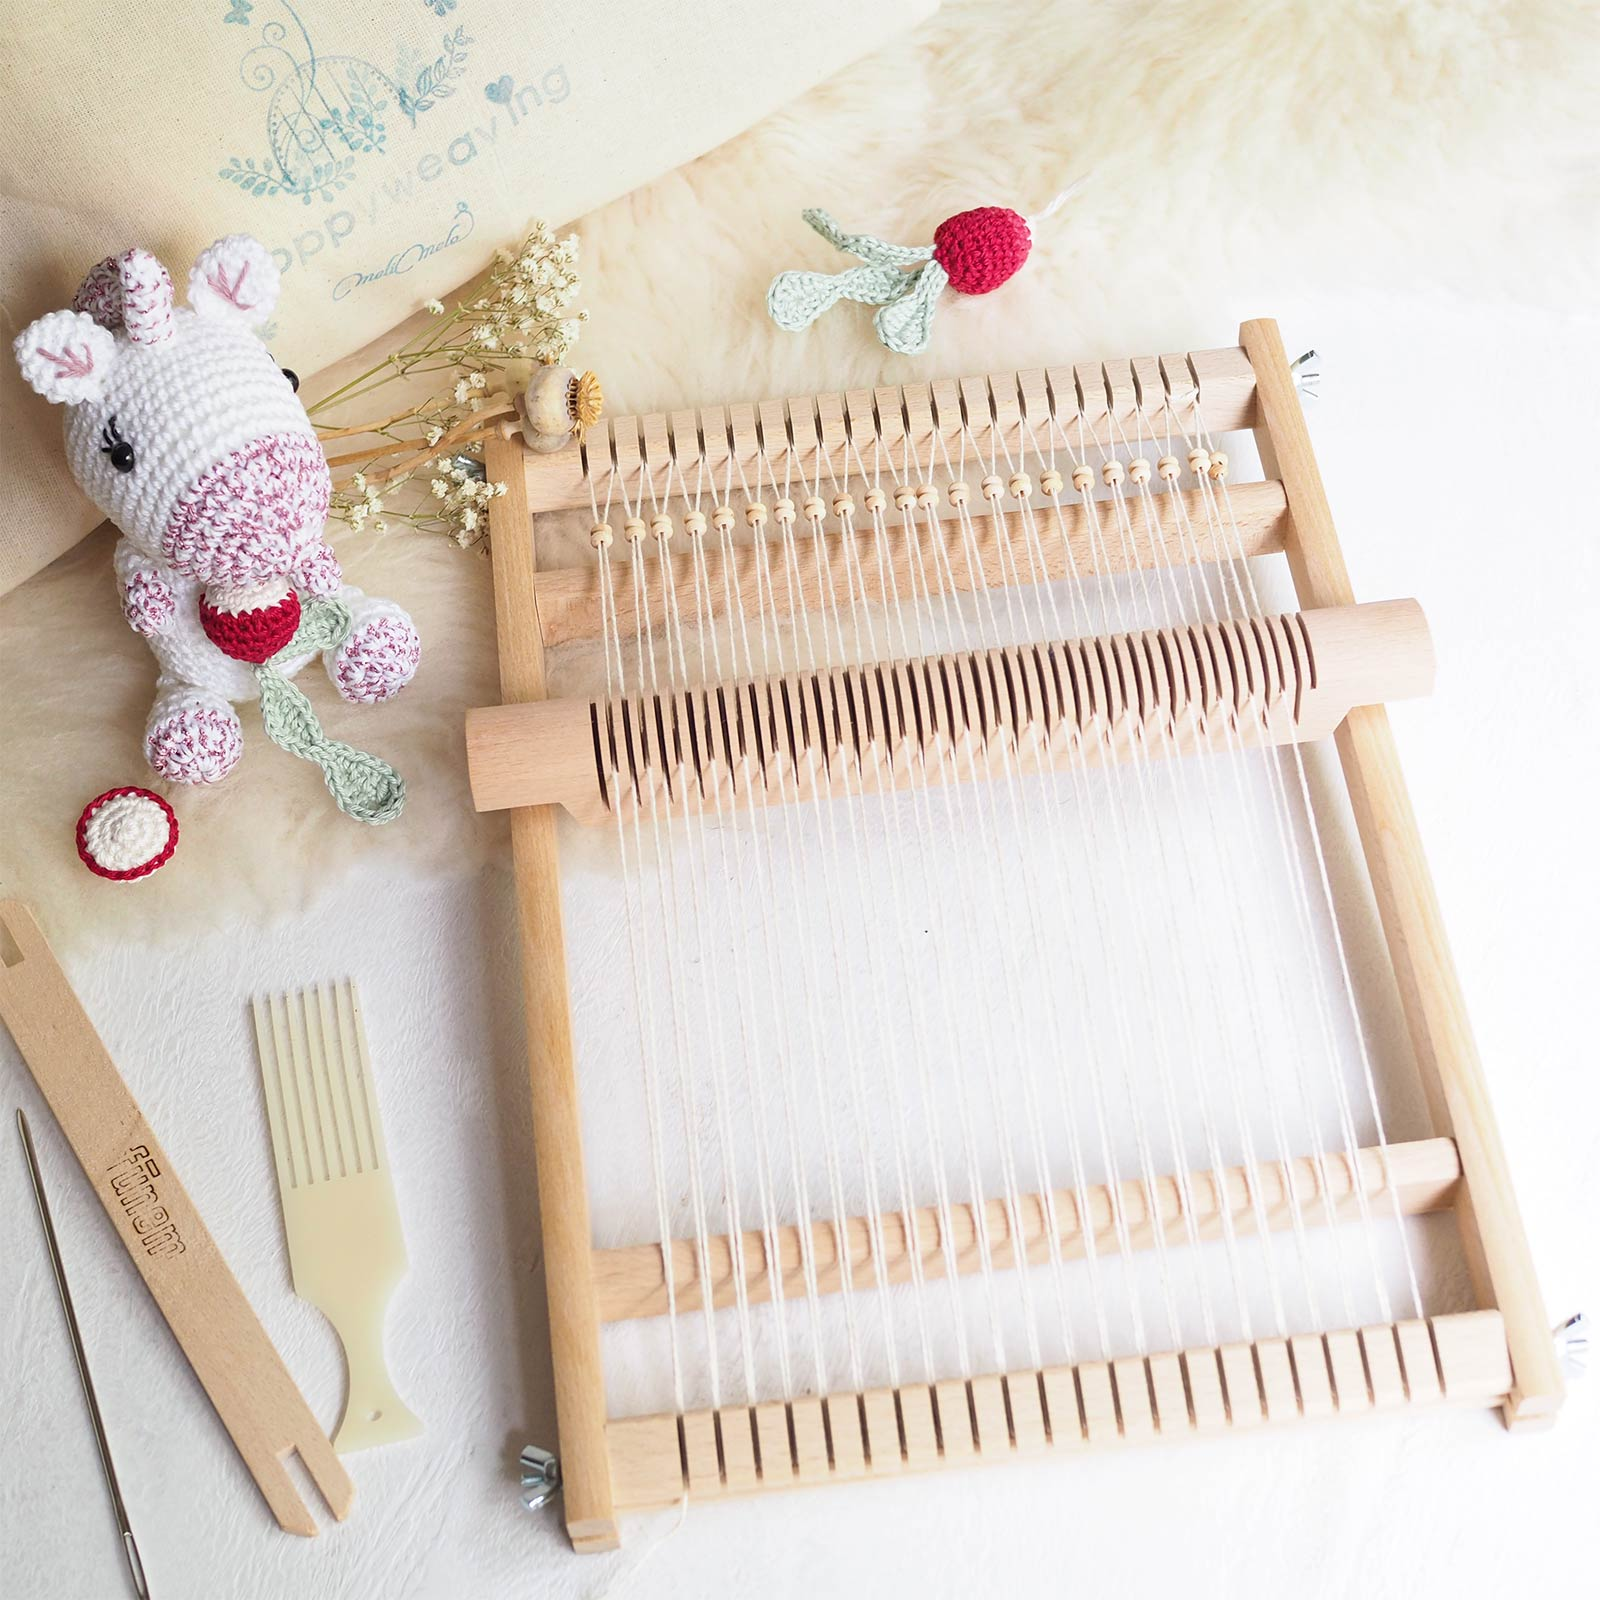 kits diy tissage encours crochet radis charlotte licorne laboutiquedemelimelo